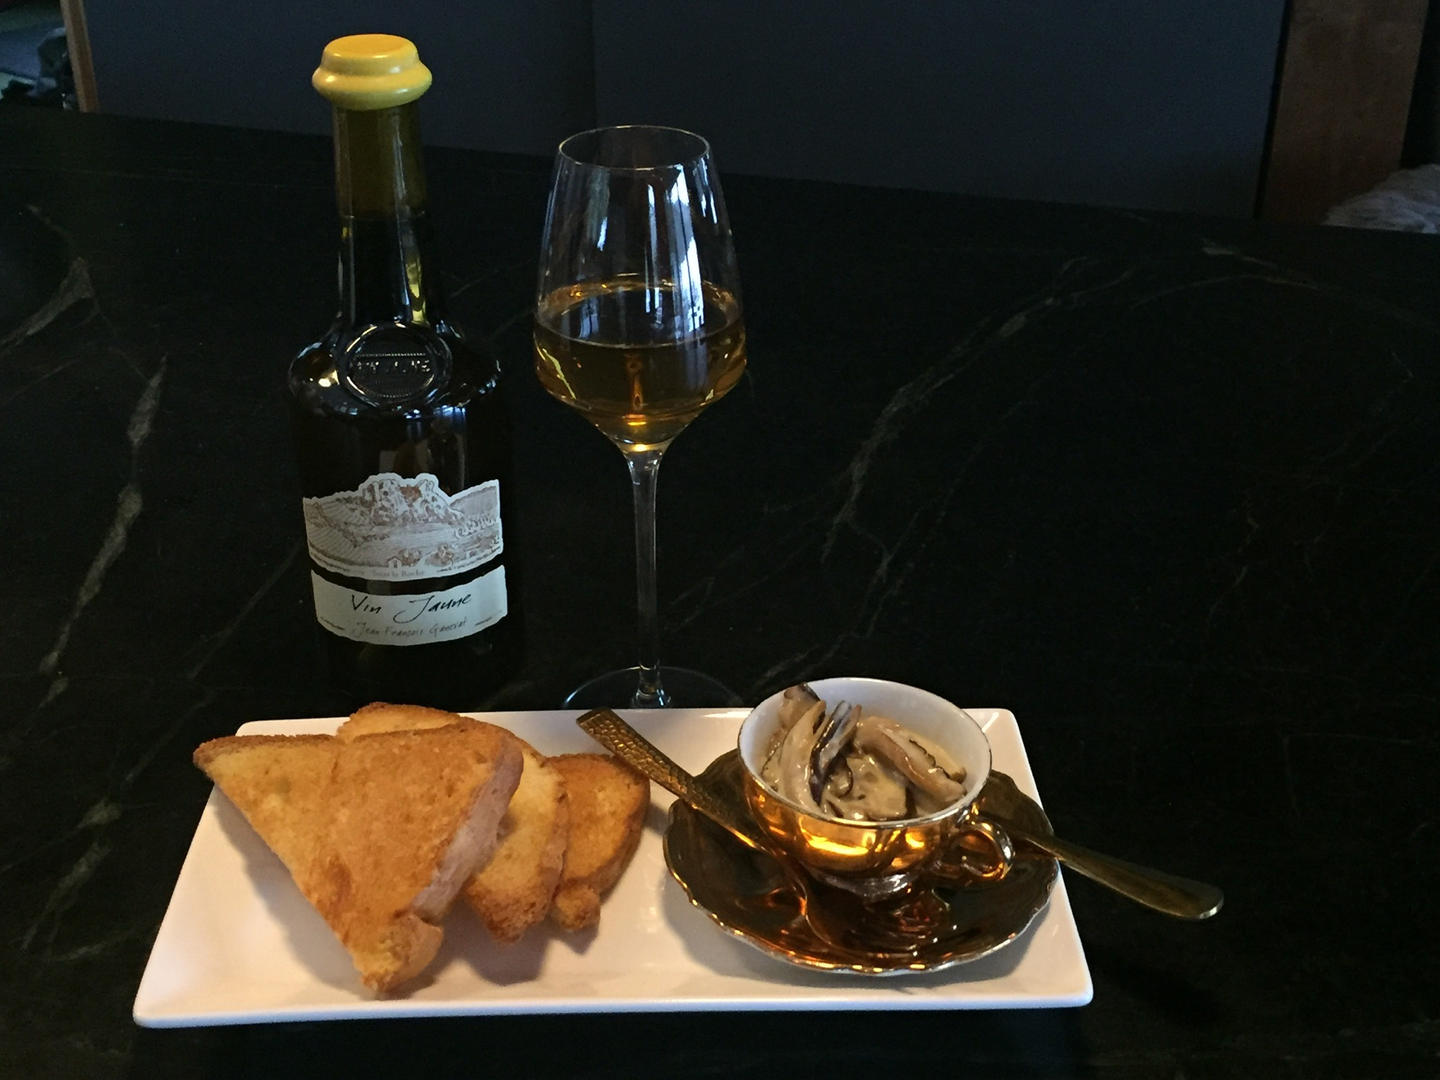 Wine & Hors d'oeuvres